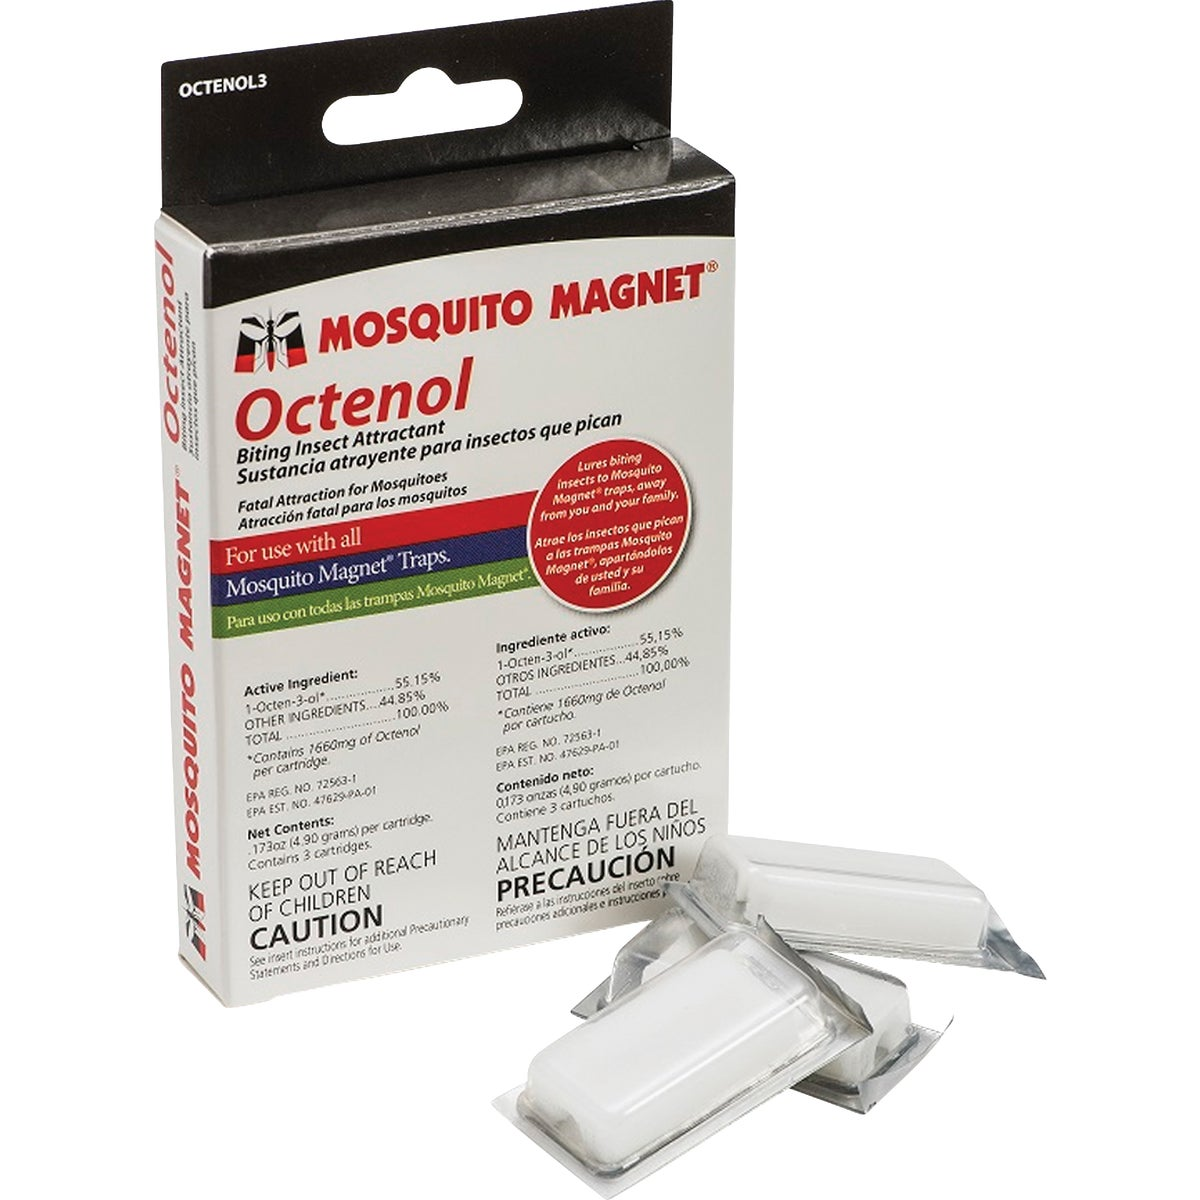 3 PACK OCTENOL CARTRIDGE - OCTENOL3 by Woodstream Corp